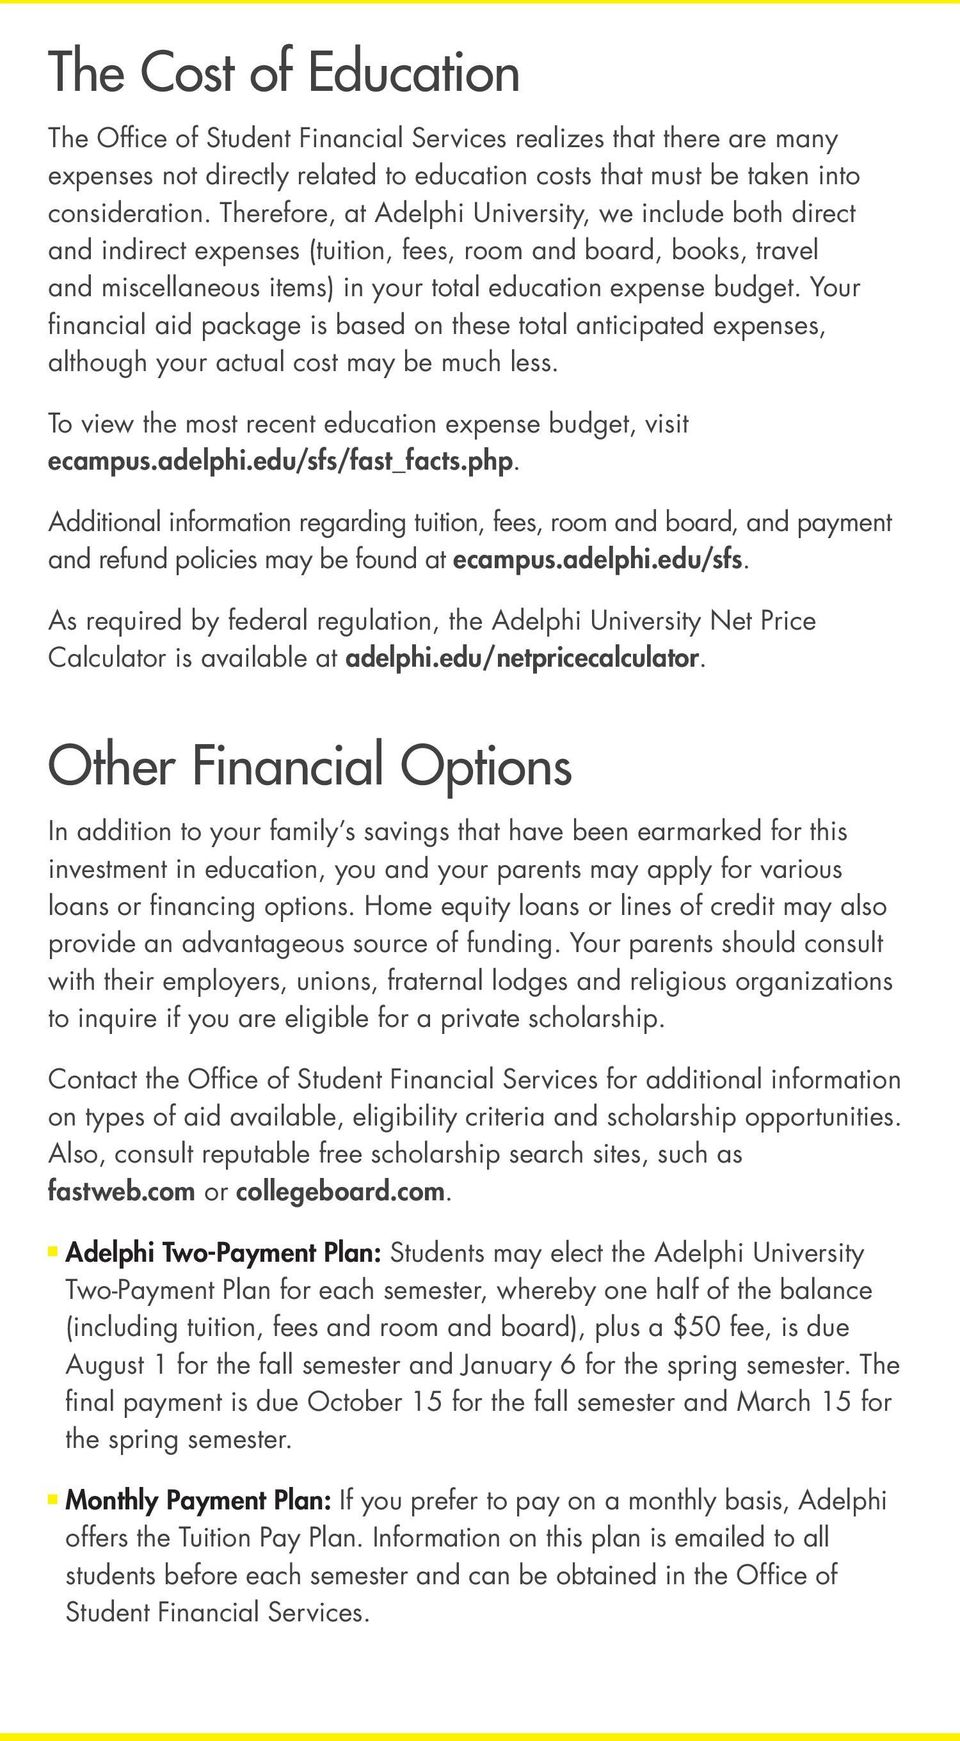 Your financial aid package is based on these total anticipated expenses, although your actual cost may be much less. To view the most recent education expense budget, visit ecampus.adelphi.